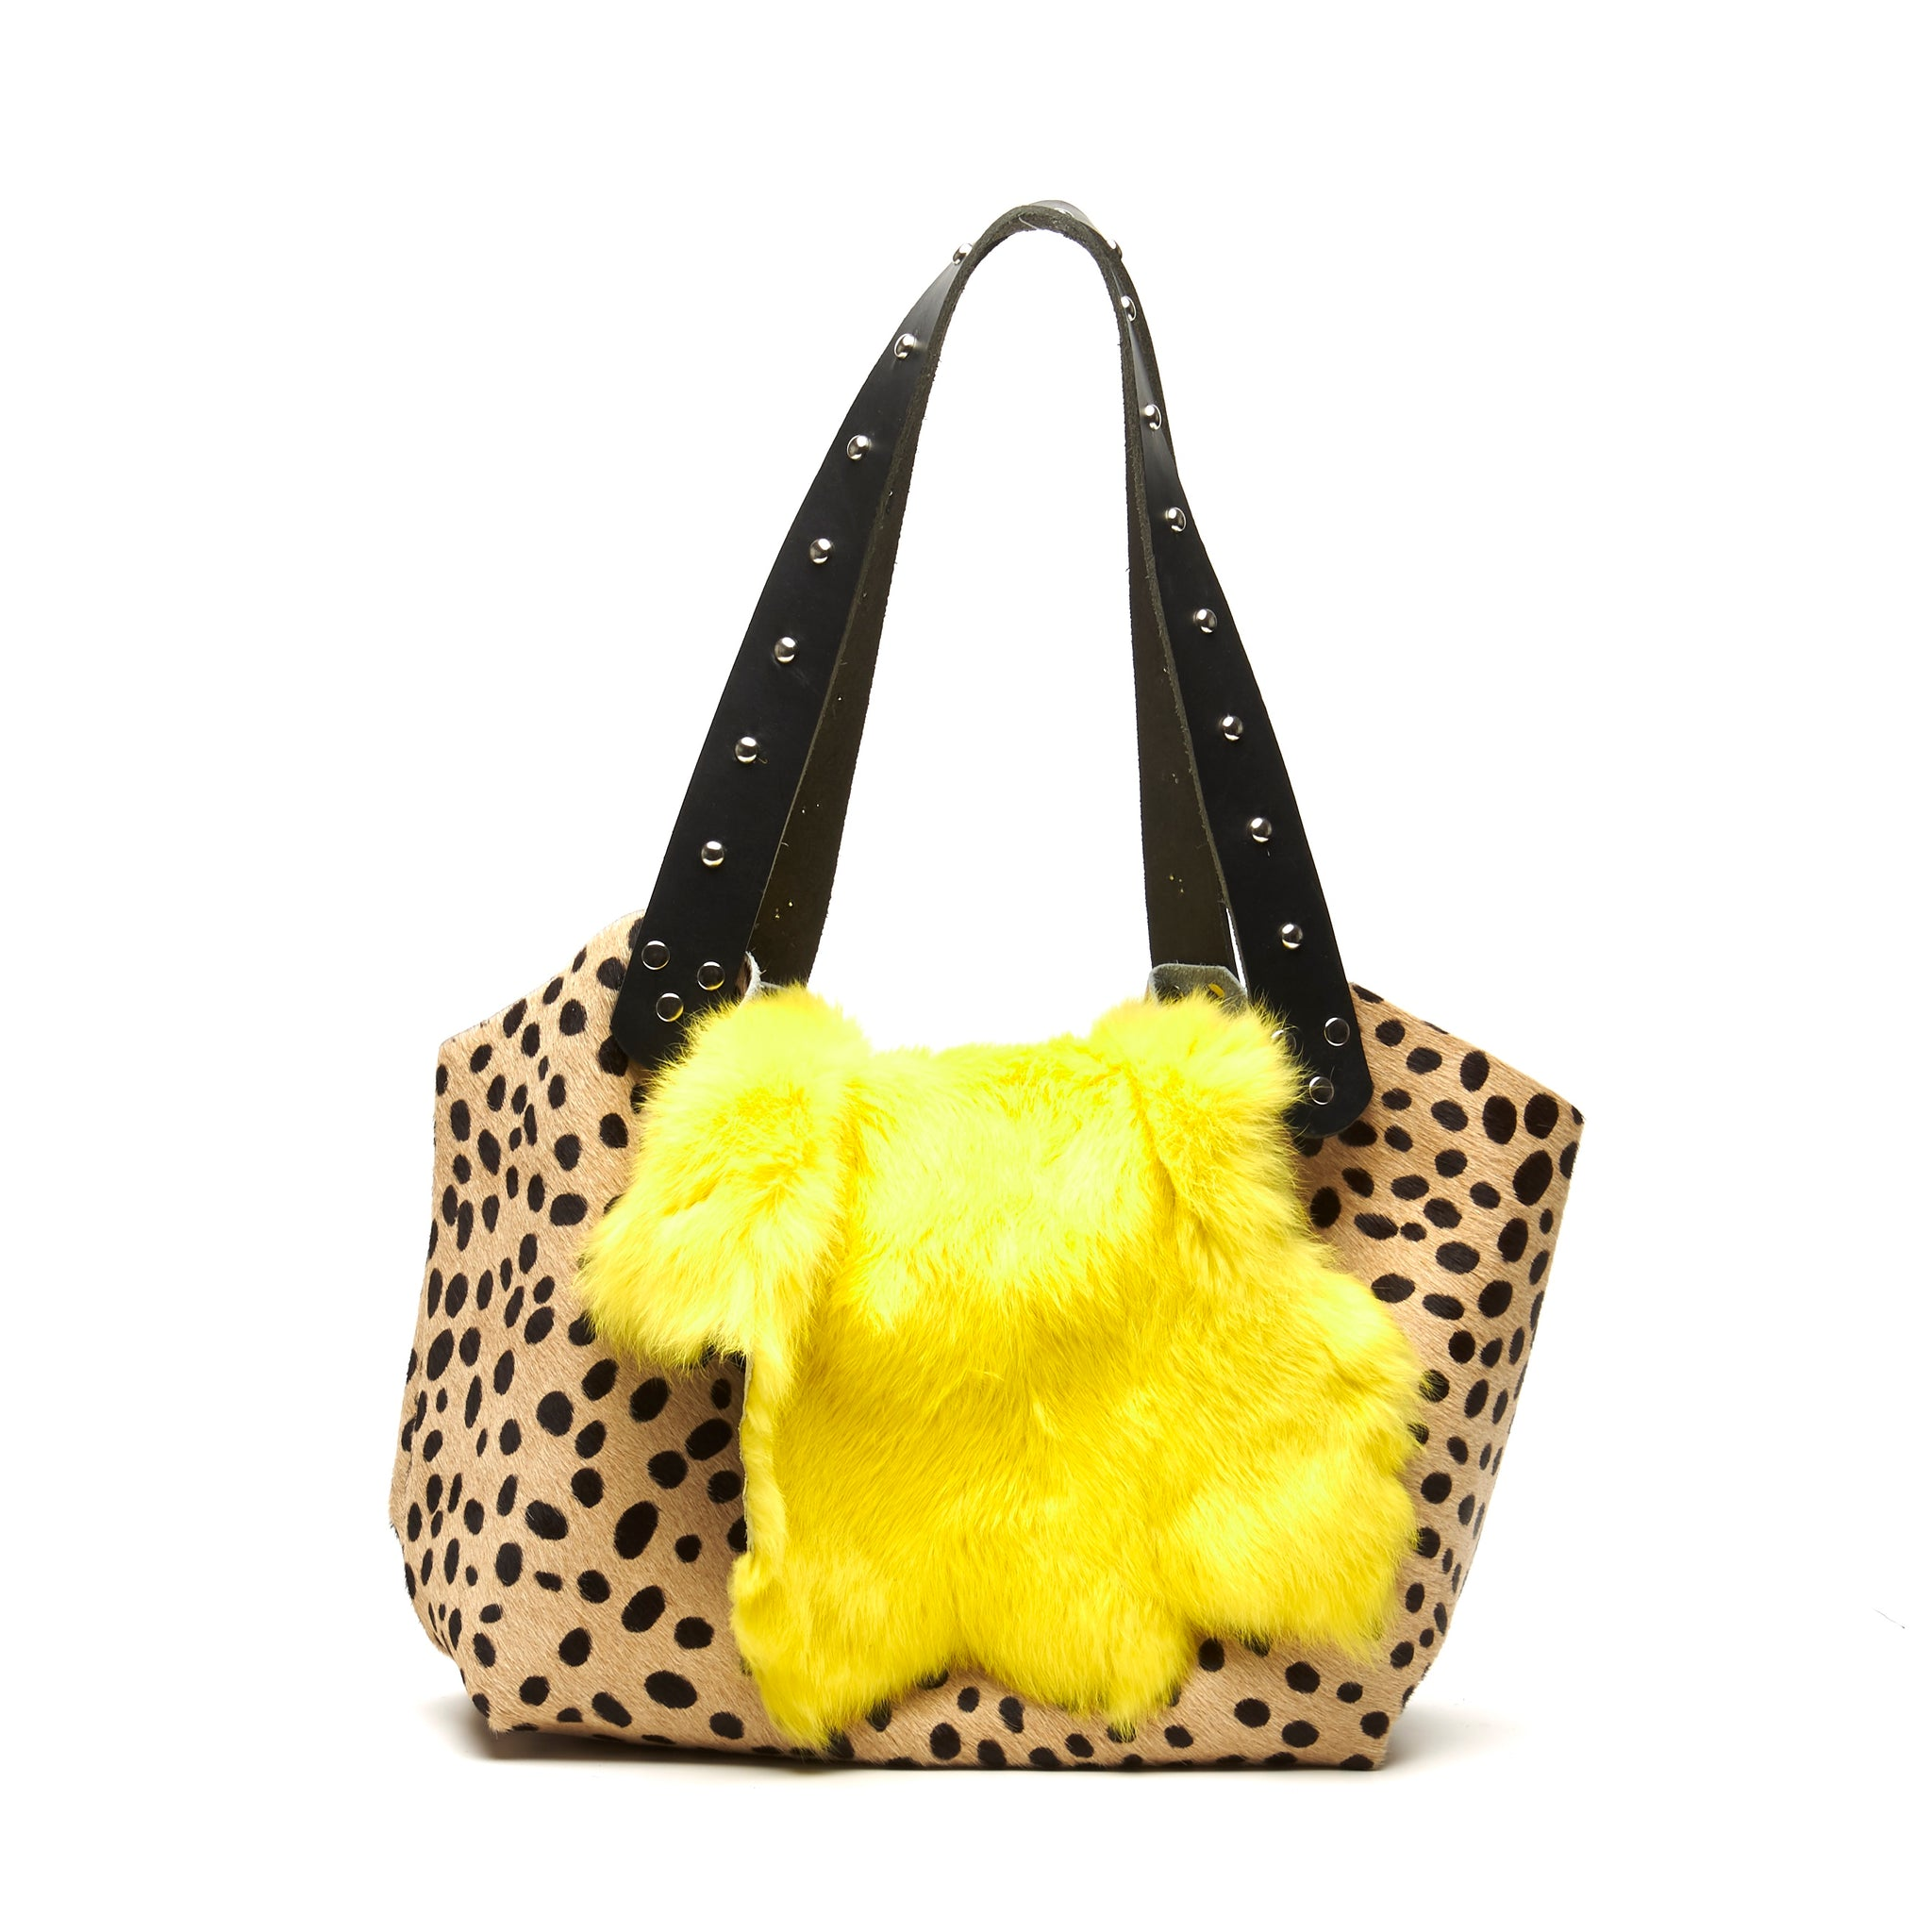 HAIR-ON COWHIDE LARGE TOTE BAG WITH CHEETAH PATTERN AND BRIGHTLY DYED FUR FLAP. by nyet jewelry.